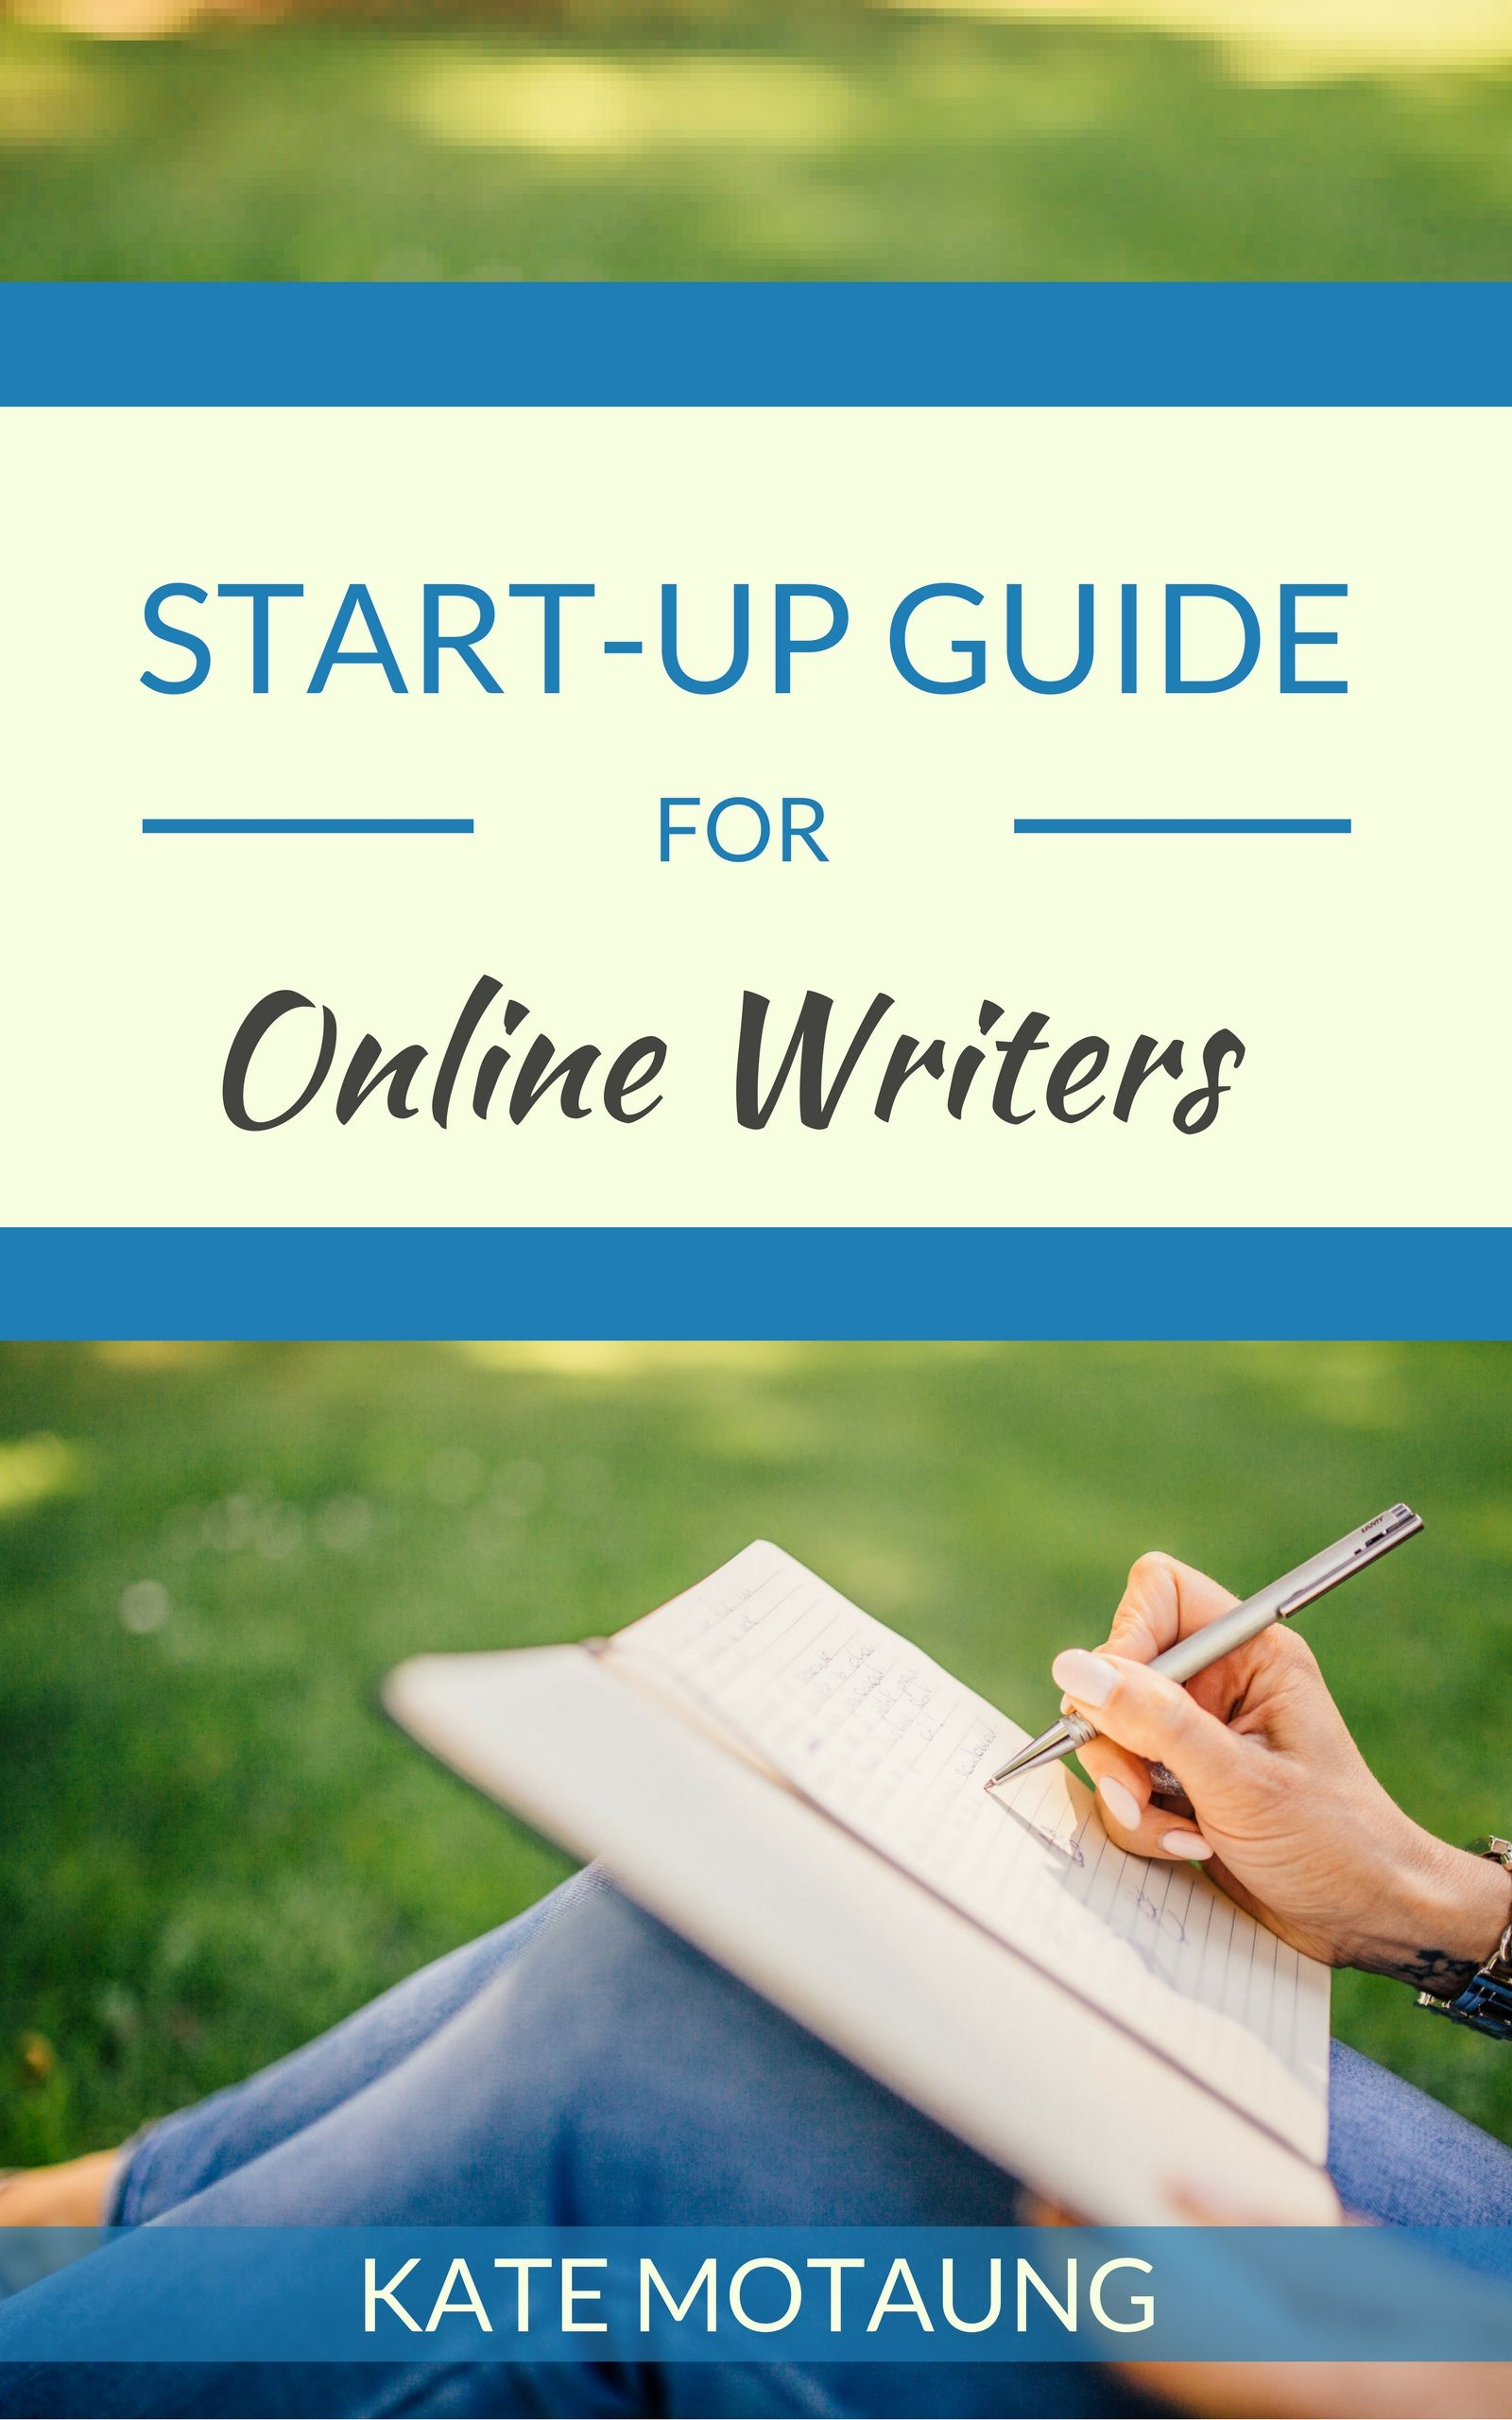 The Start Up Guide For Online Writers Is Now Available Learn How To Become An Established Writer Online Course Is Co Christian Writers Writer Blogging Mentor Learn to read and write online